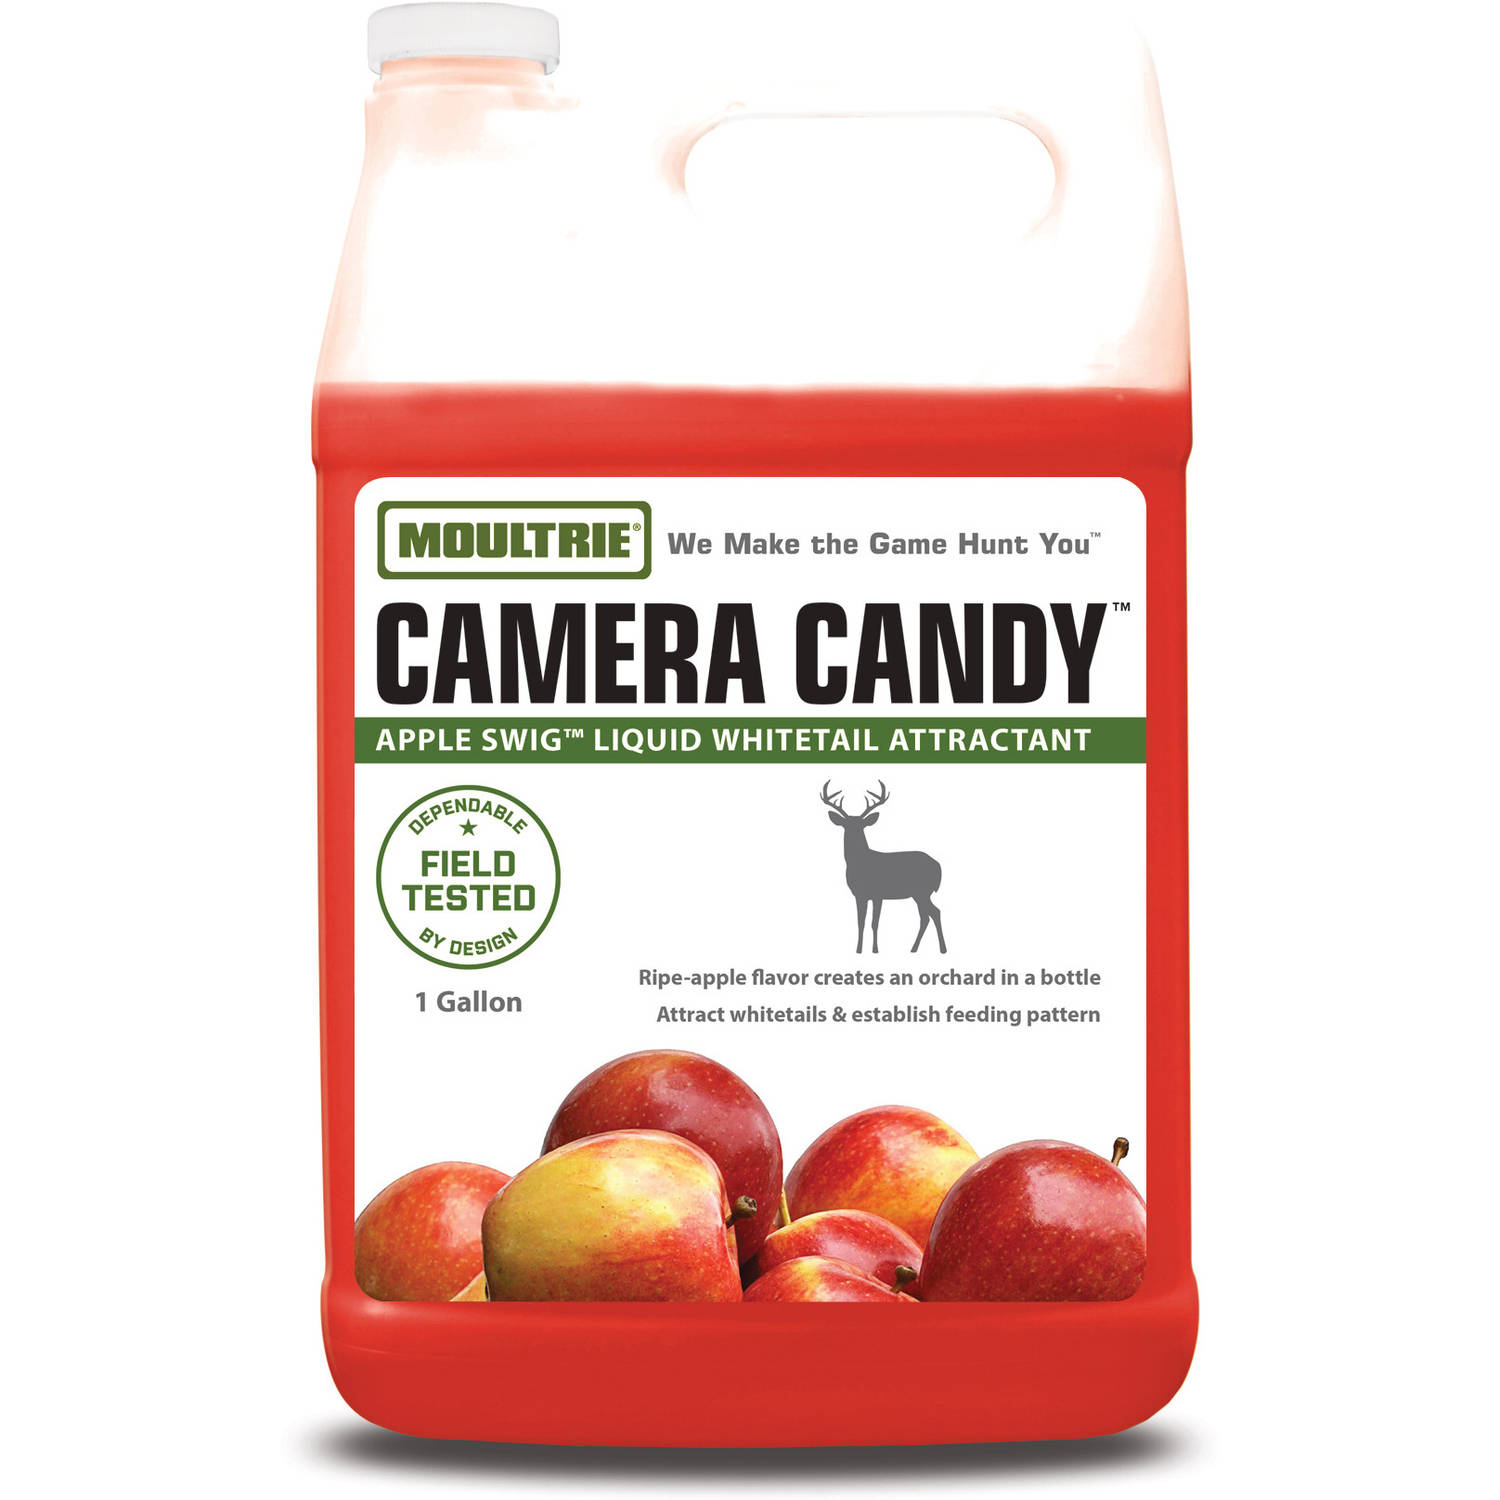 Moultrie Camera Candy, Apple Swig